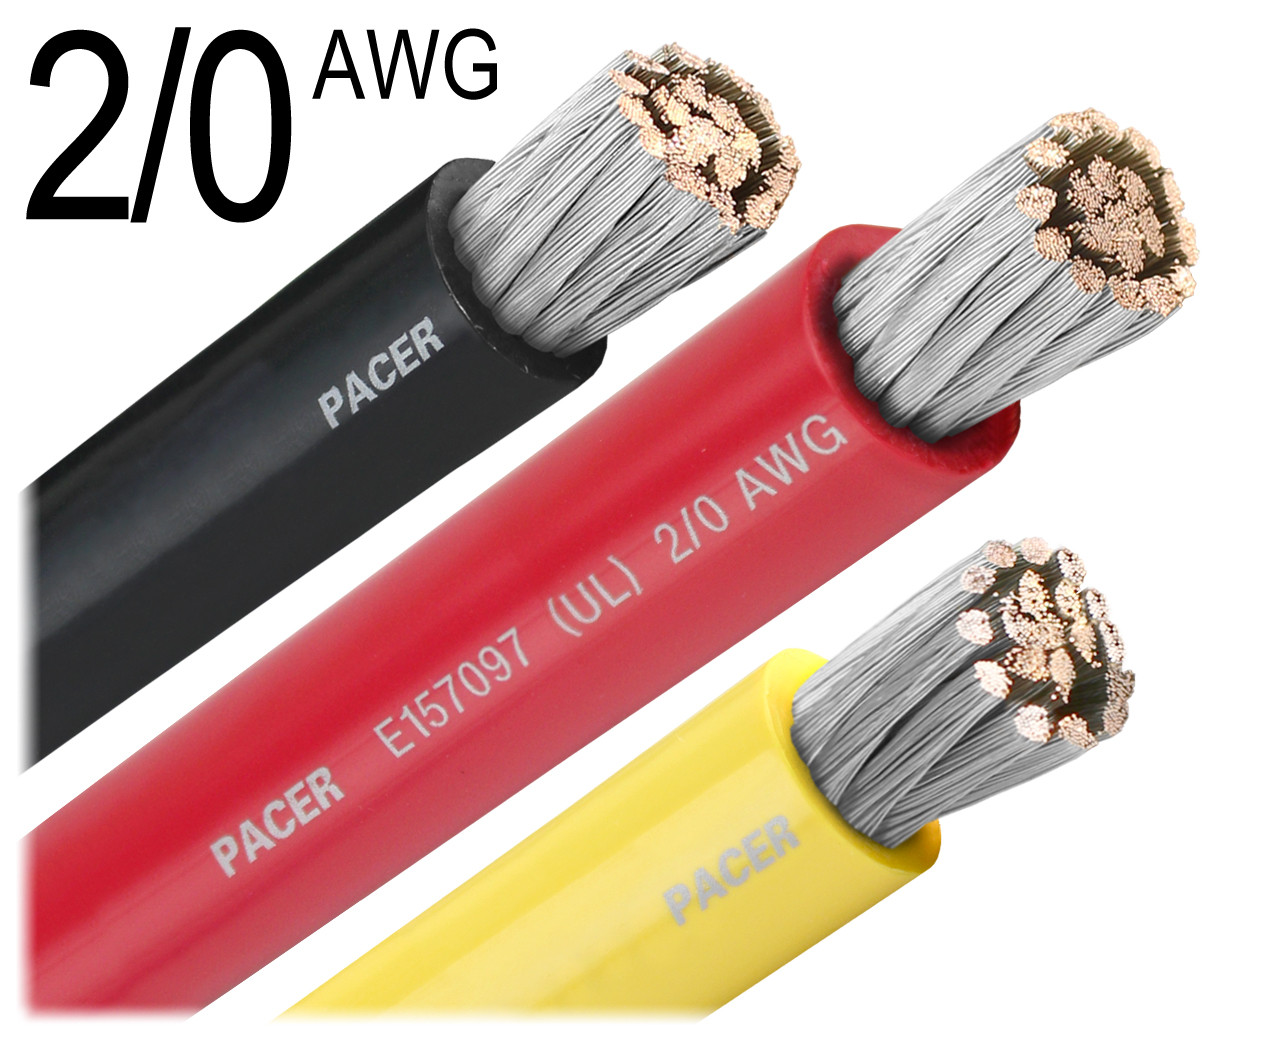 2//0 AWG Marine Wire Tinned Copper Battery Boat Cable Available in Black /& Red Made in The USA